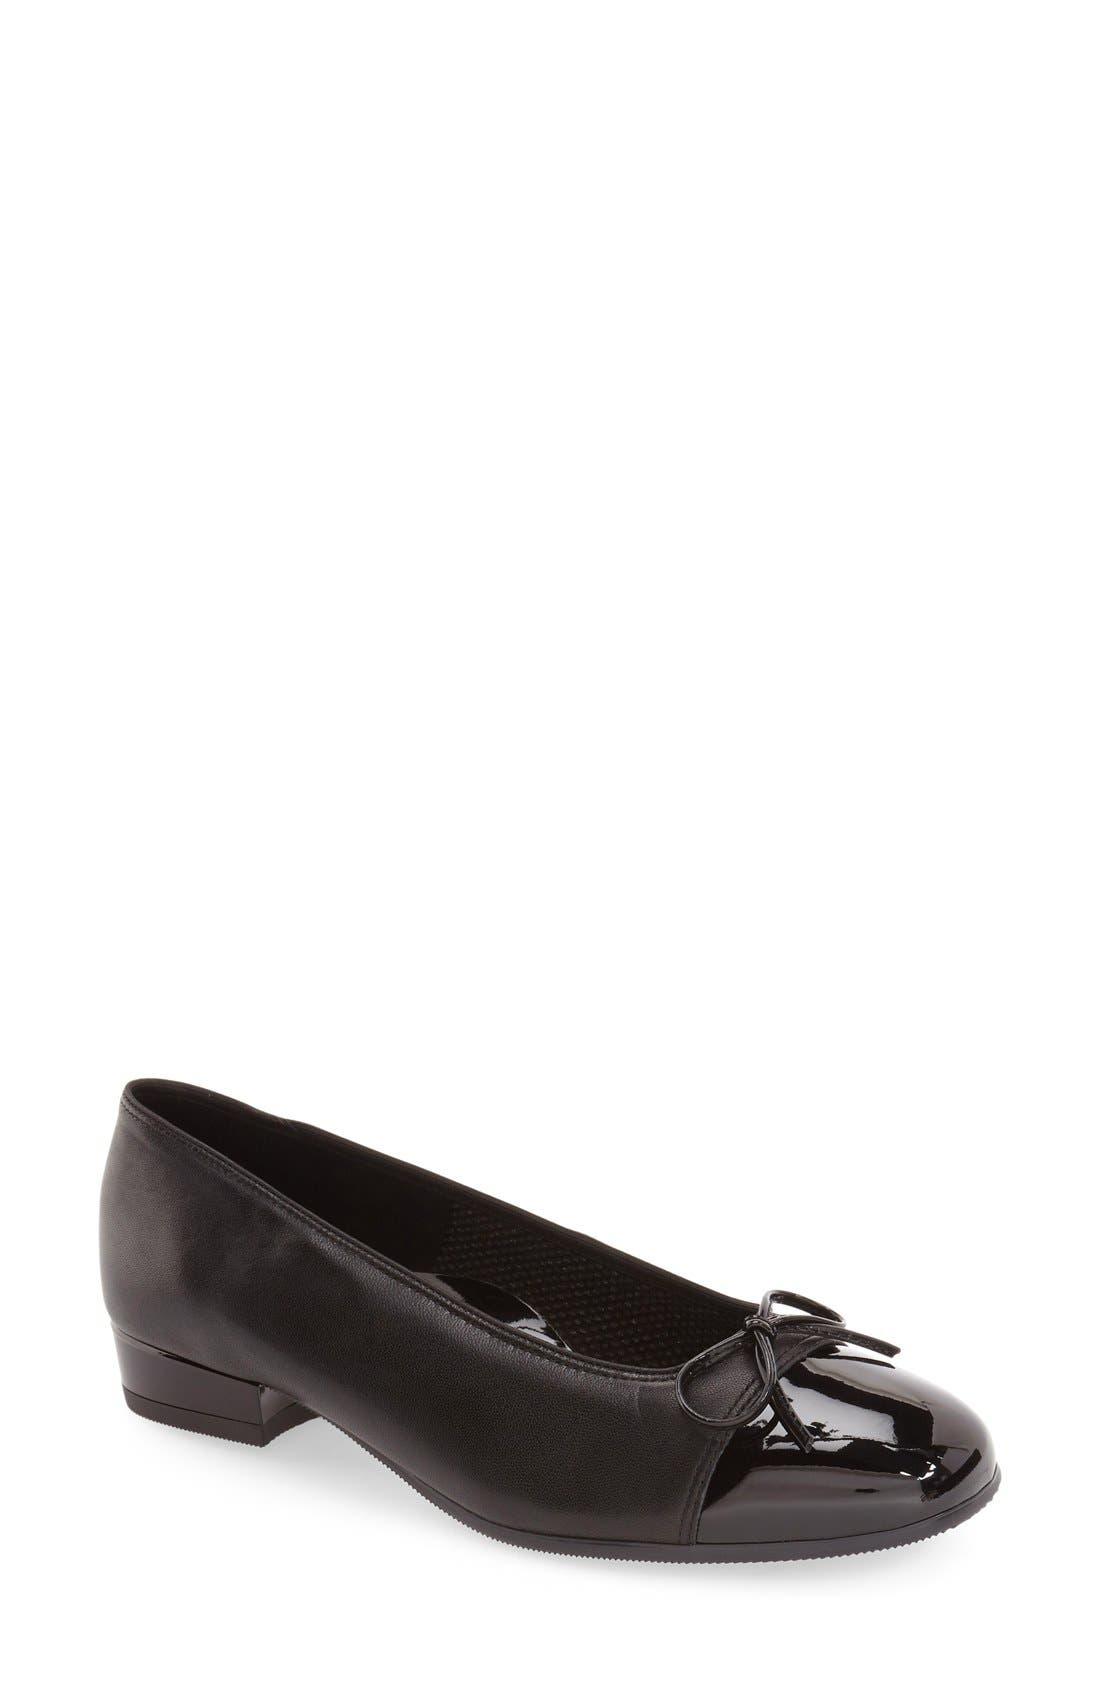 'Bel' Cap Toe Pump,                             Main thumbnail 1, color,                             Black Leather